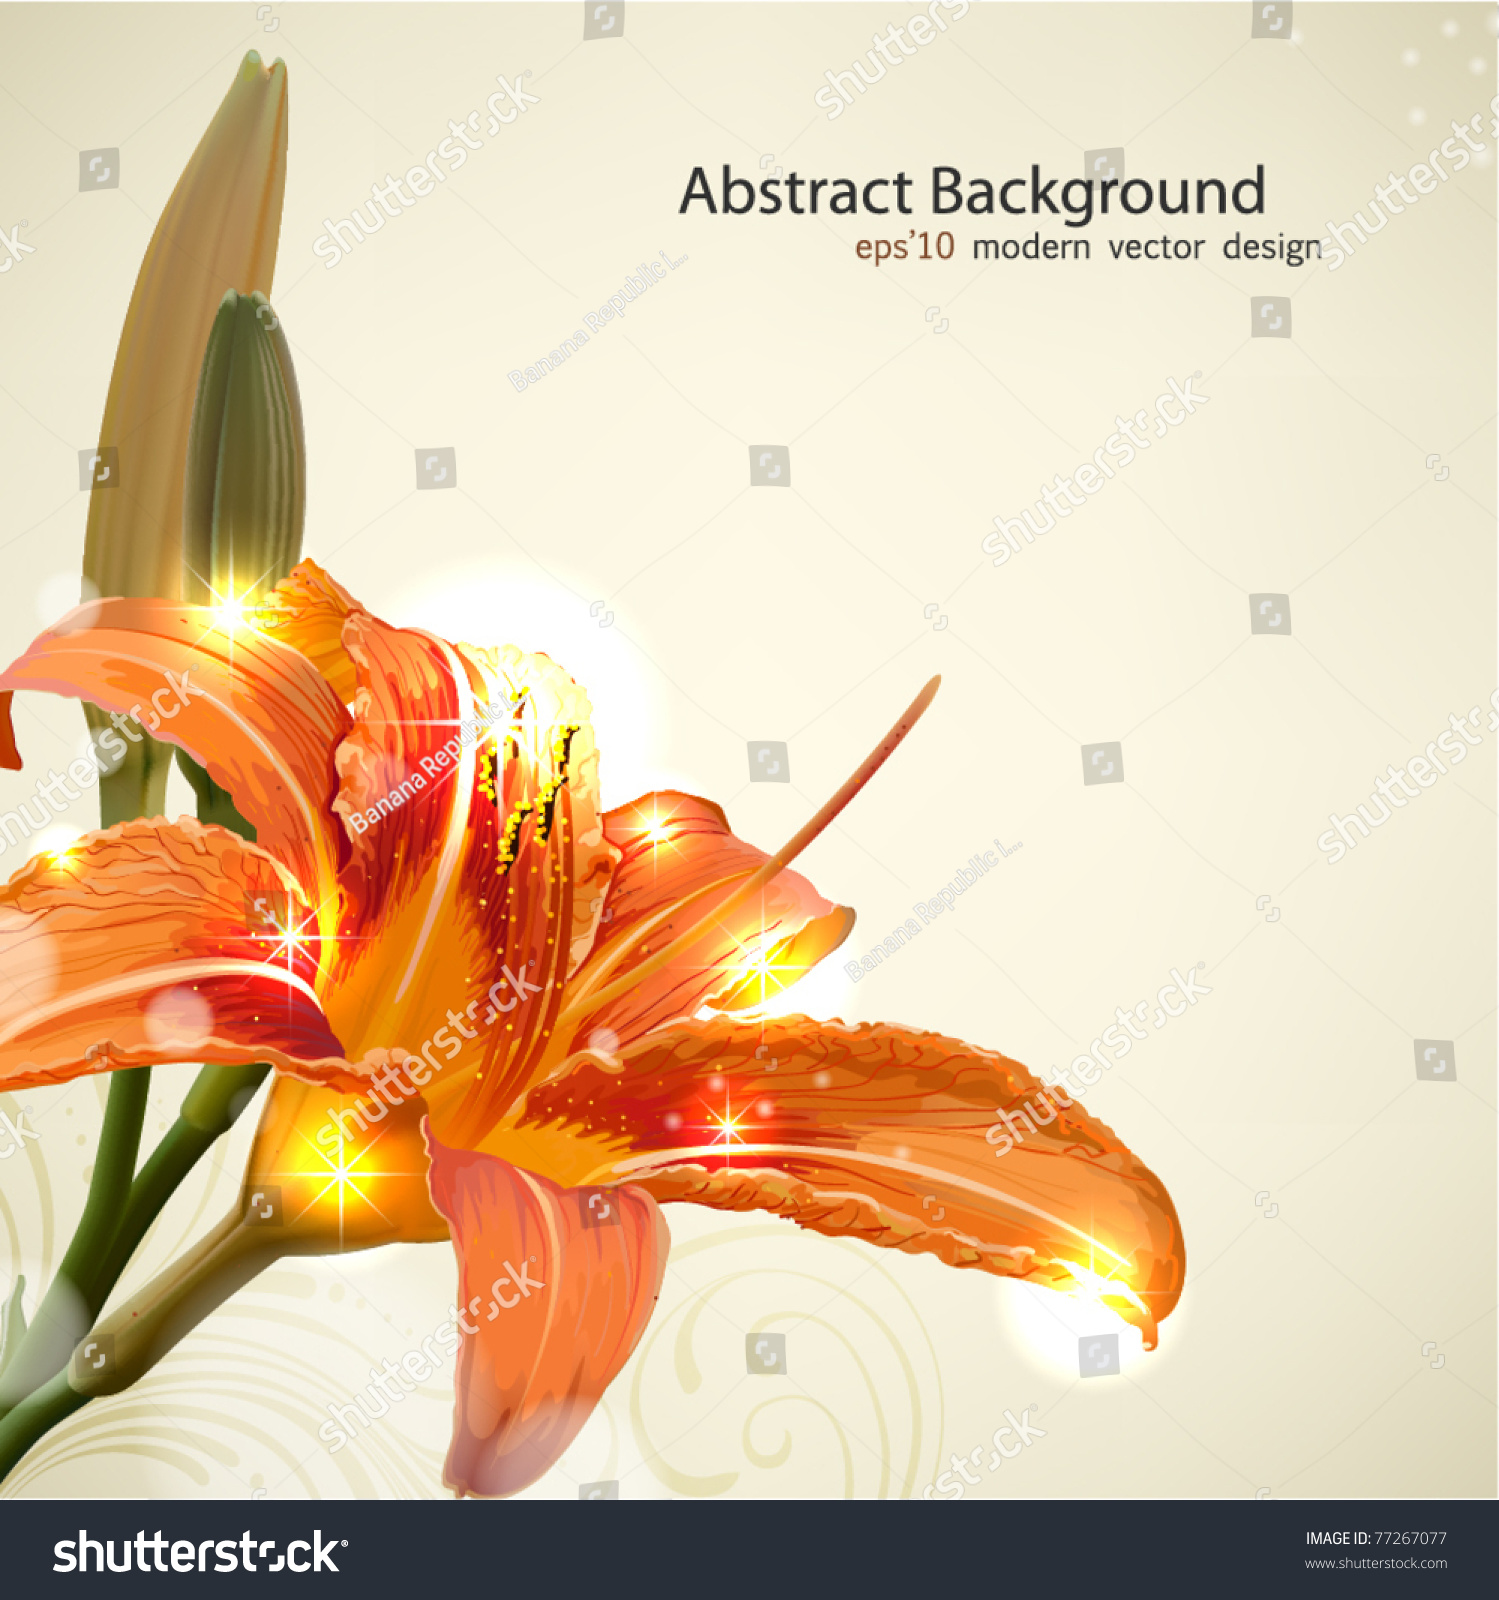 Lily Flower Abstract Vector Background, Wedding Card